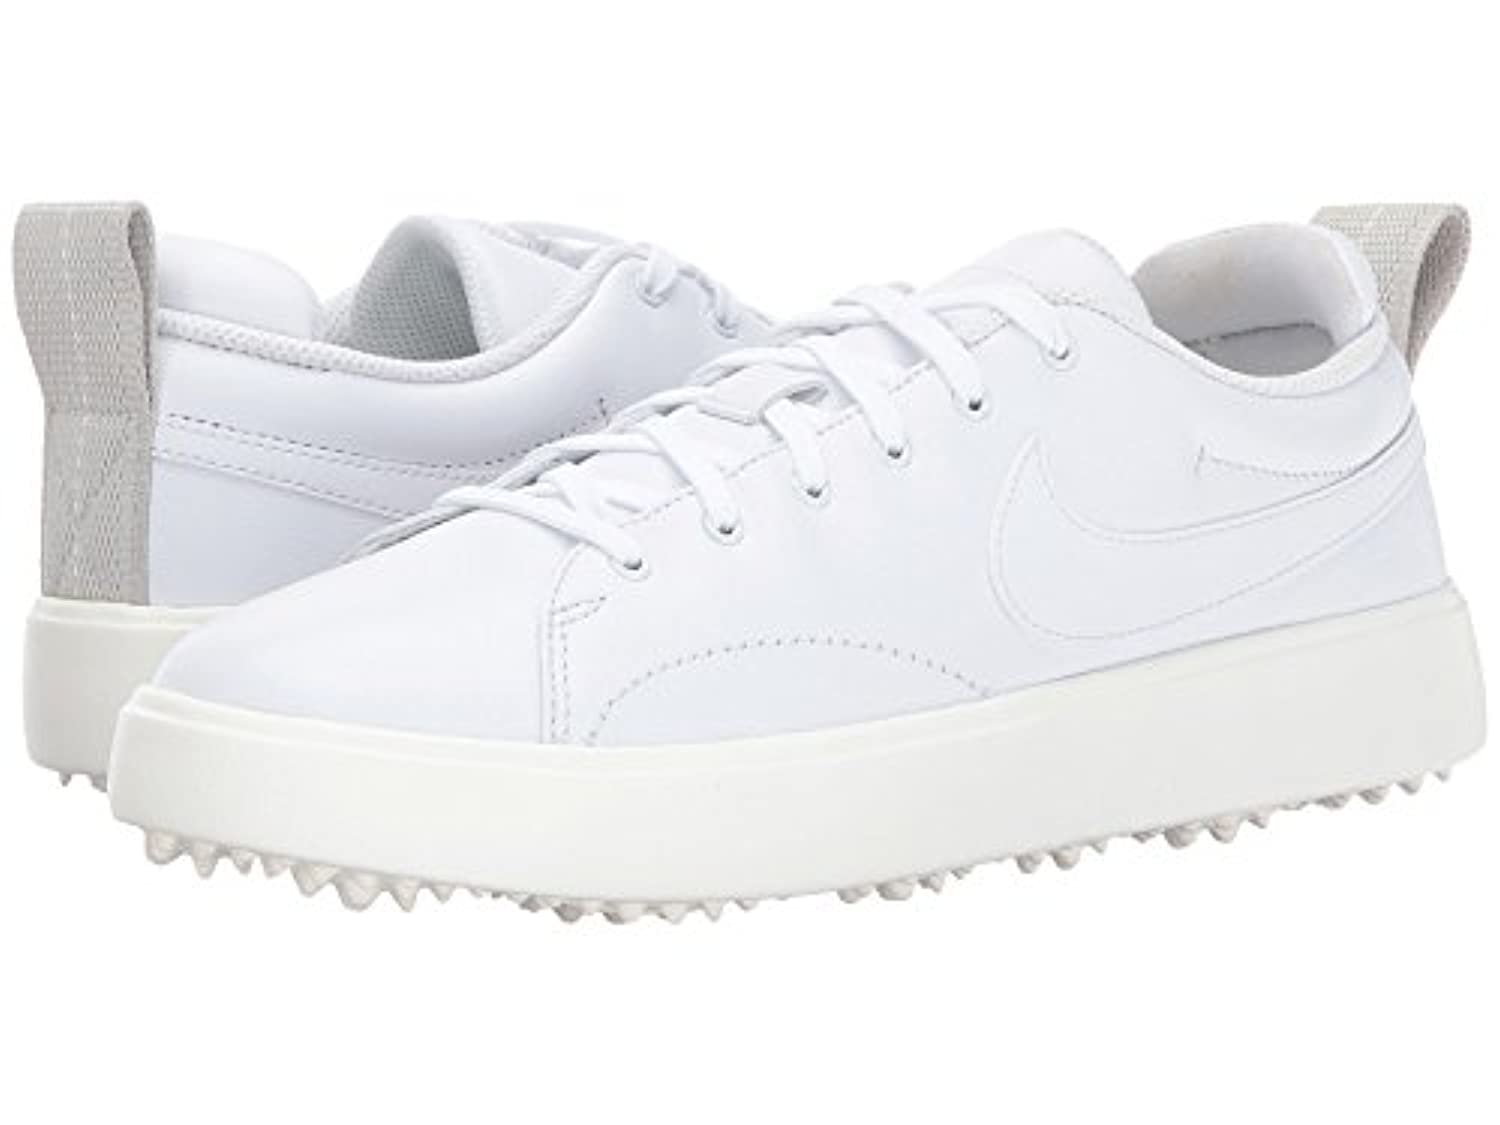 (ナイキ) NIKE レディースゴルフシューズ?靴 Course Classic White/White/Sail/Black 6.5 (23.5cm) B - Medium